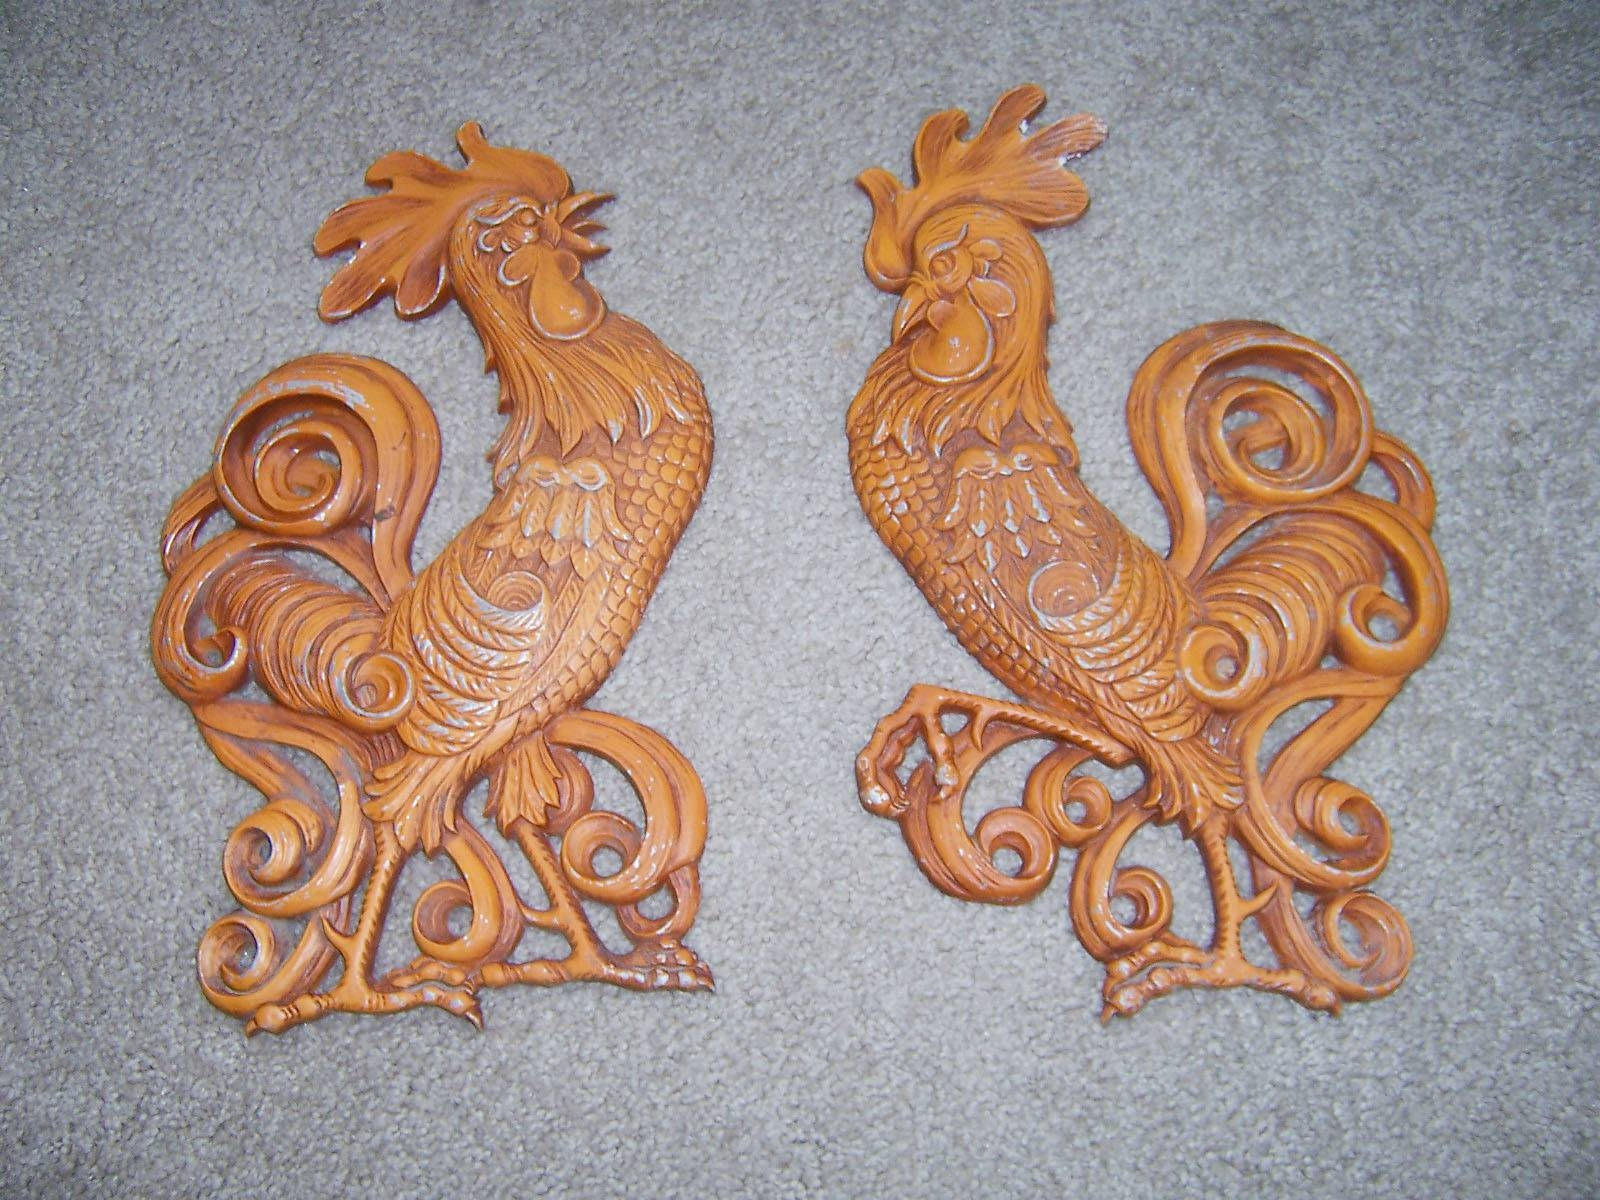 Vintage Goodness 1.0: Featured Collectible – Vintage Sexton Wall Decor Regarding Current Metal Rooster Wall Decor (Gallery 18 of 25)